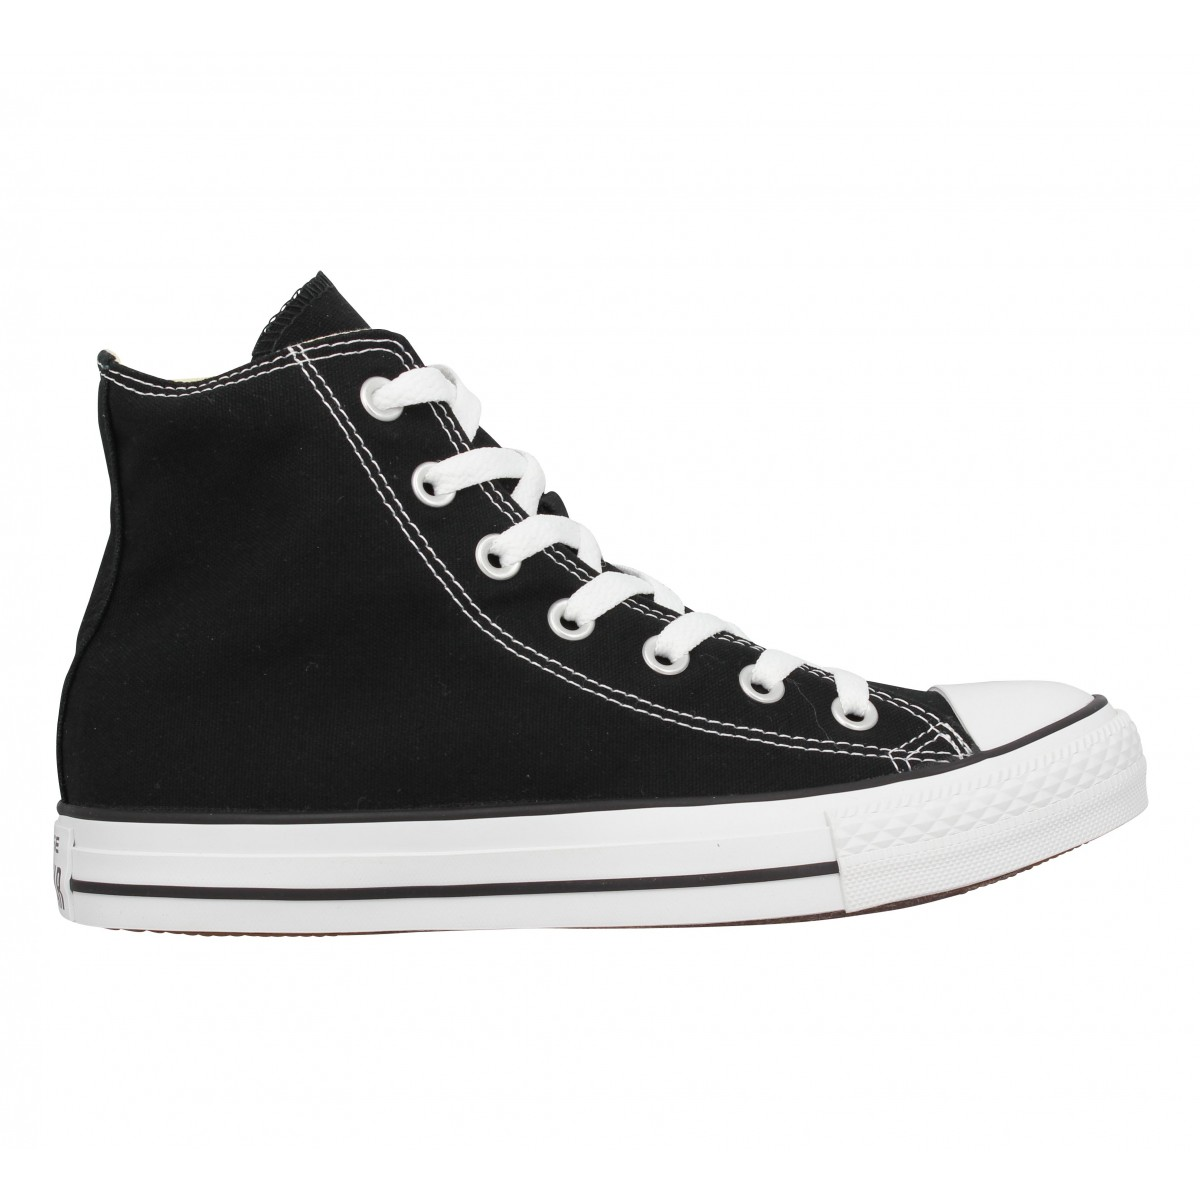 Baskets Converse 15860 en toile